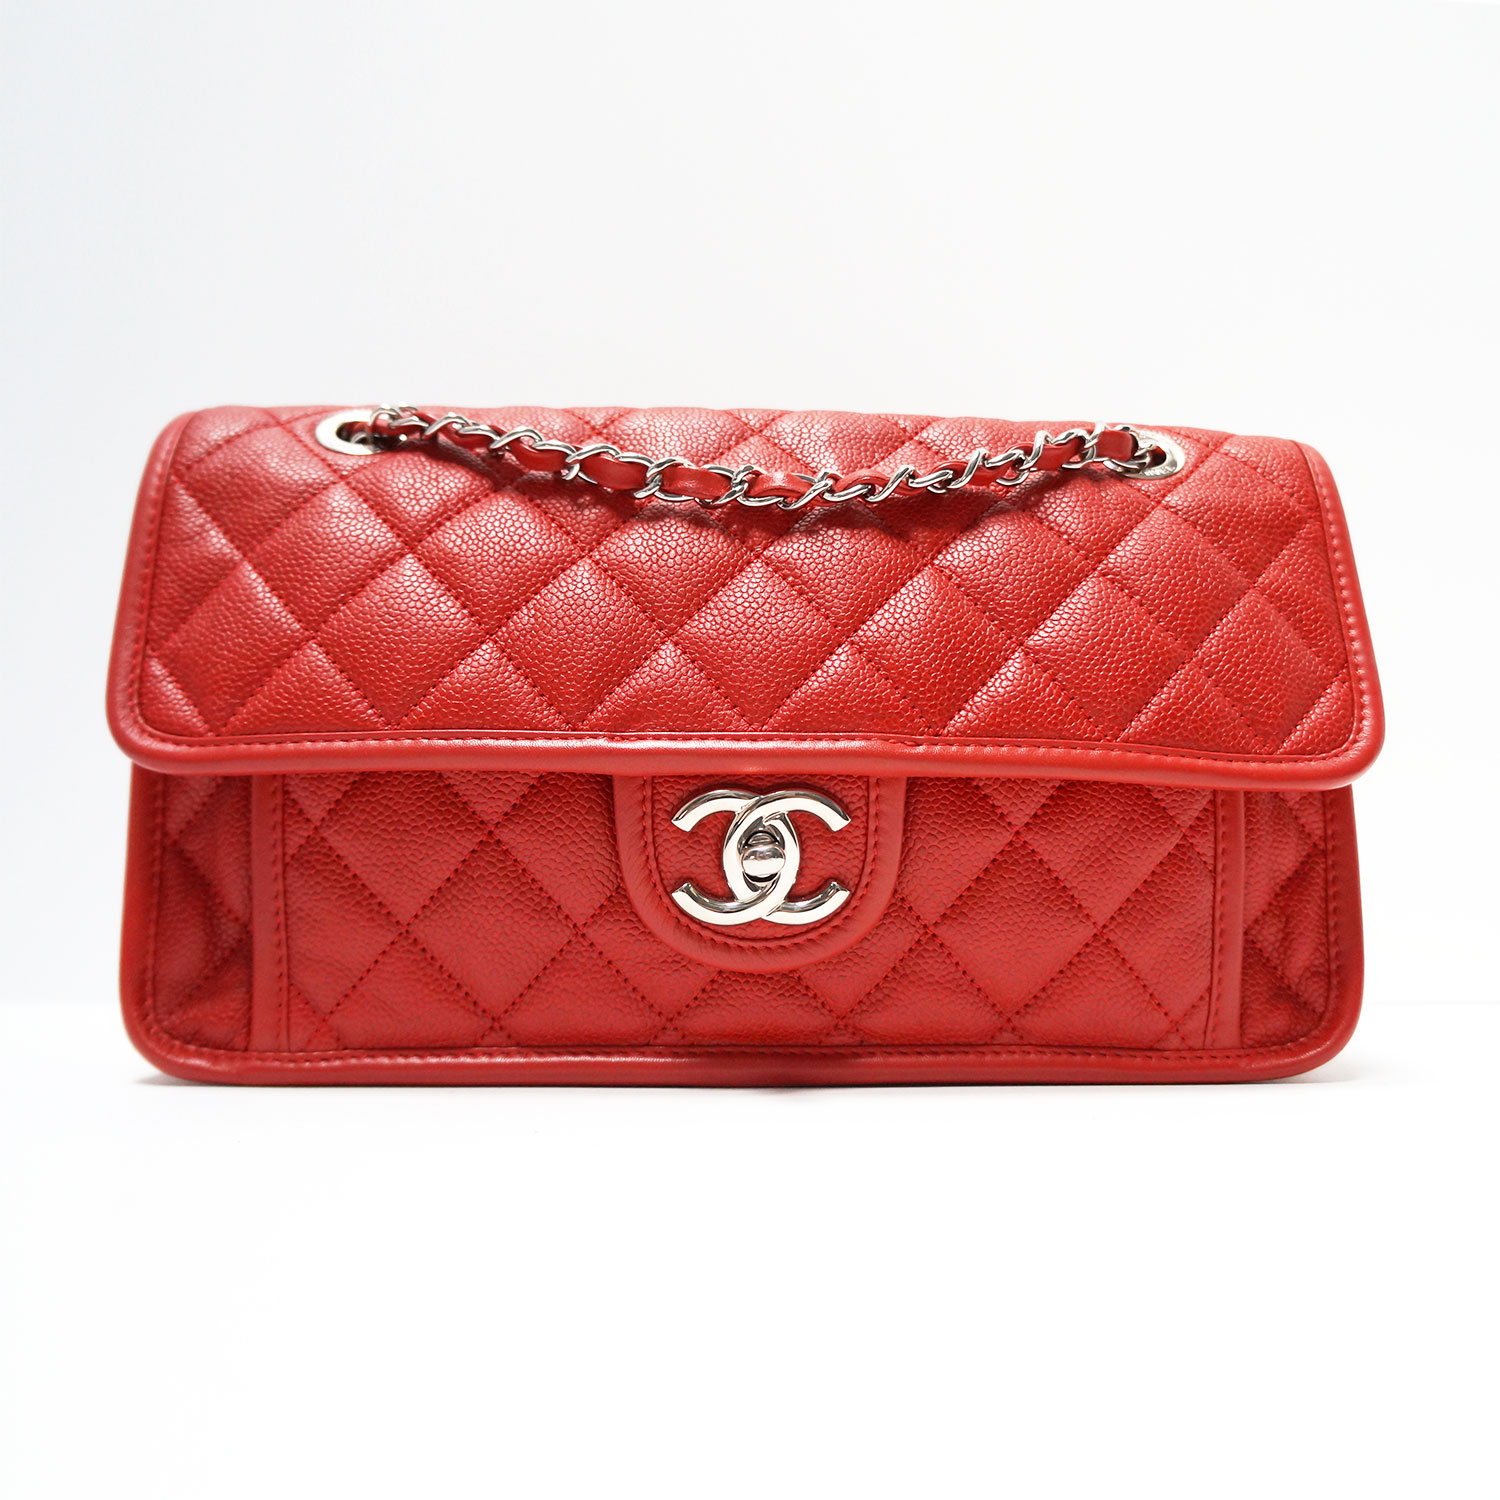 Chanel Riviera Medium Red Caviar Leather Flap Bag  8d93e3d004